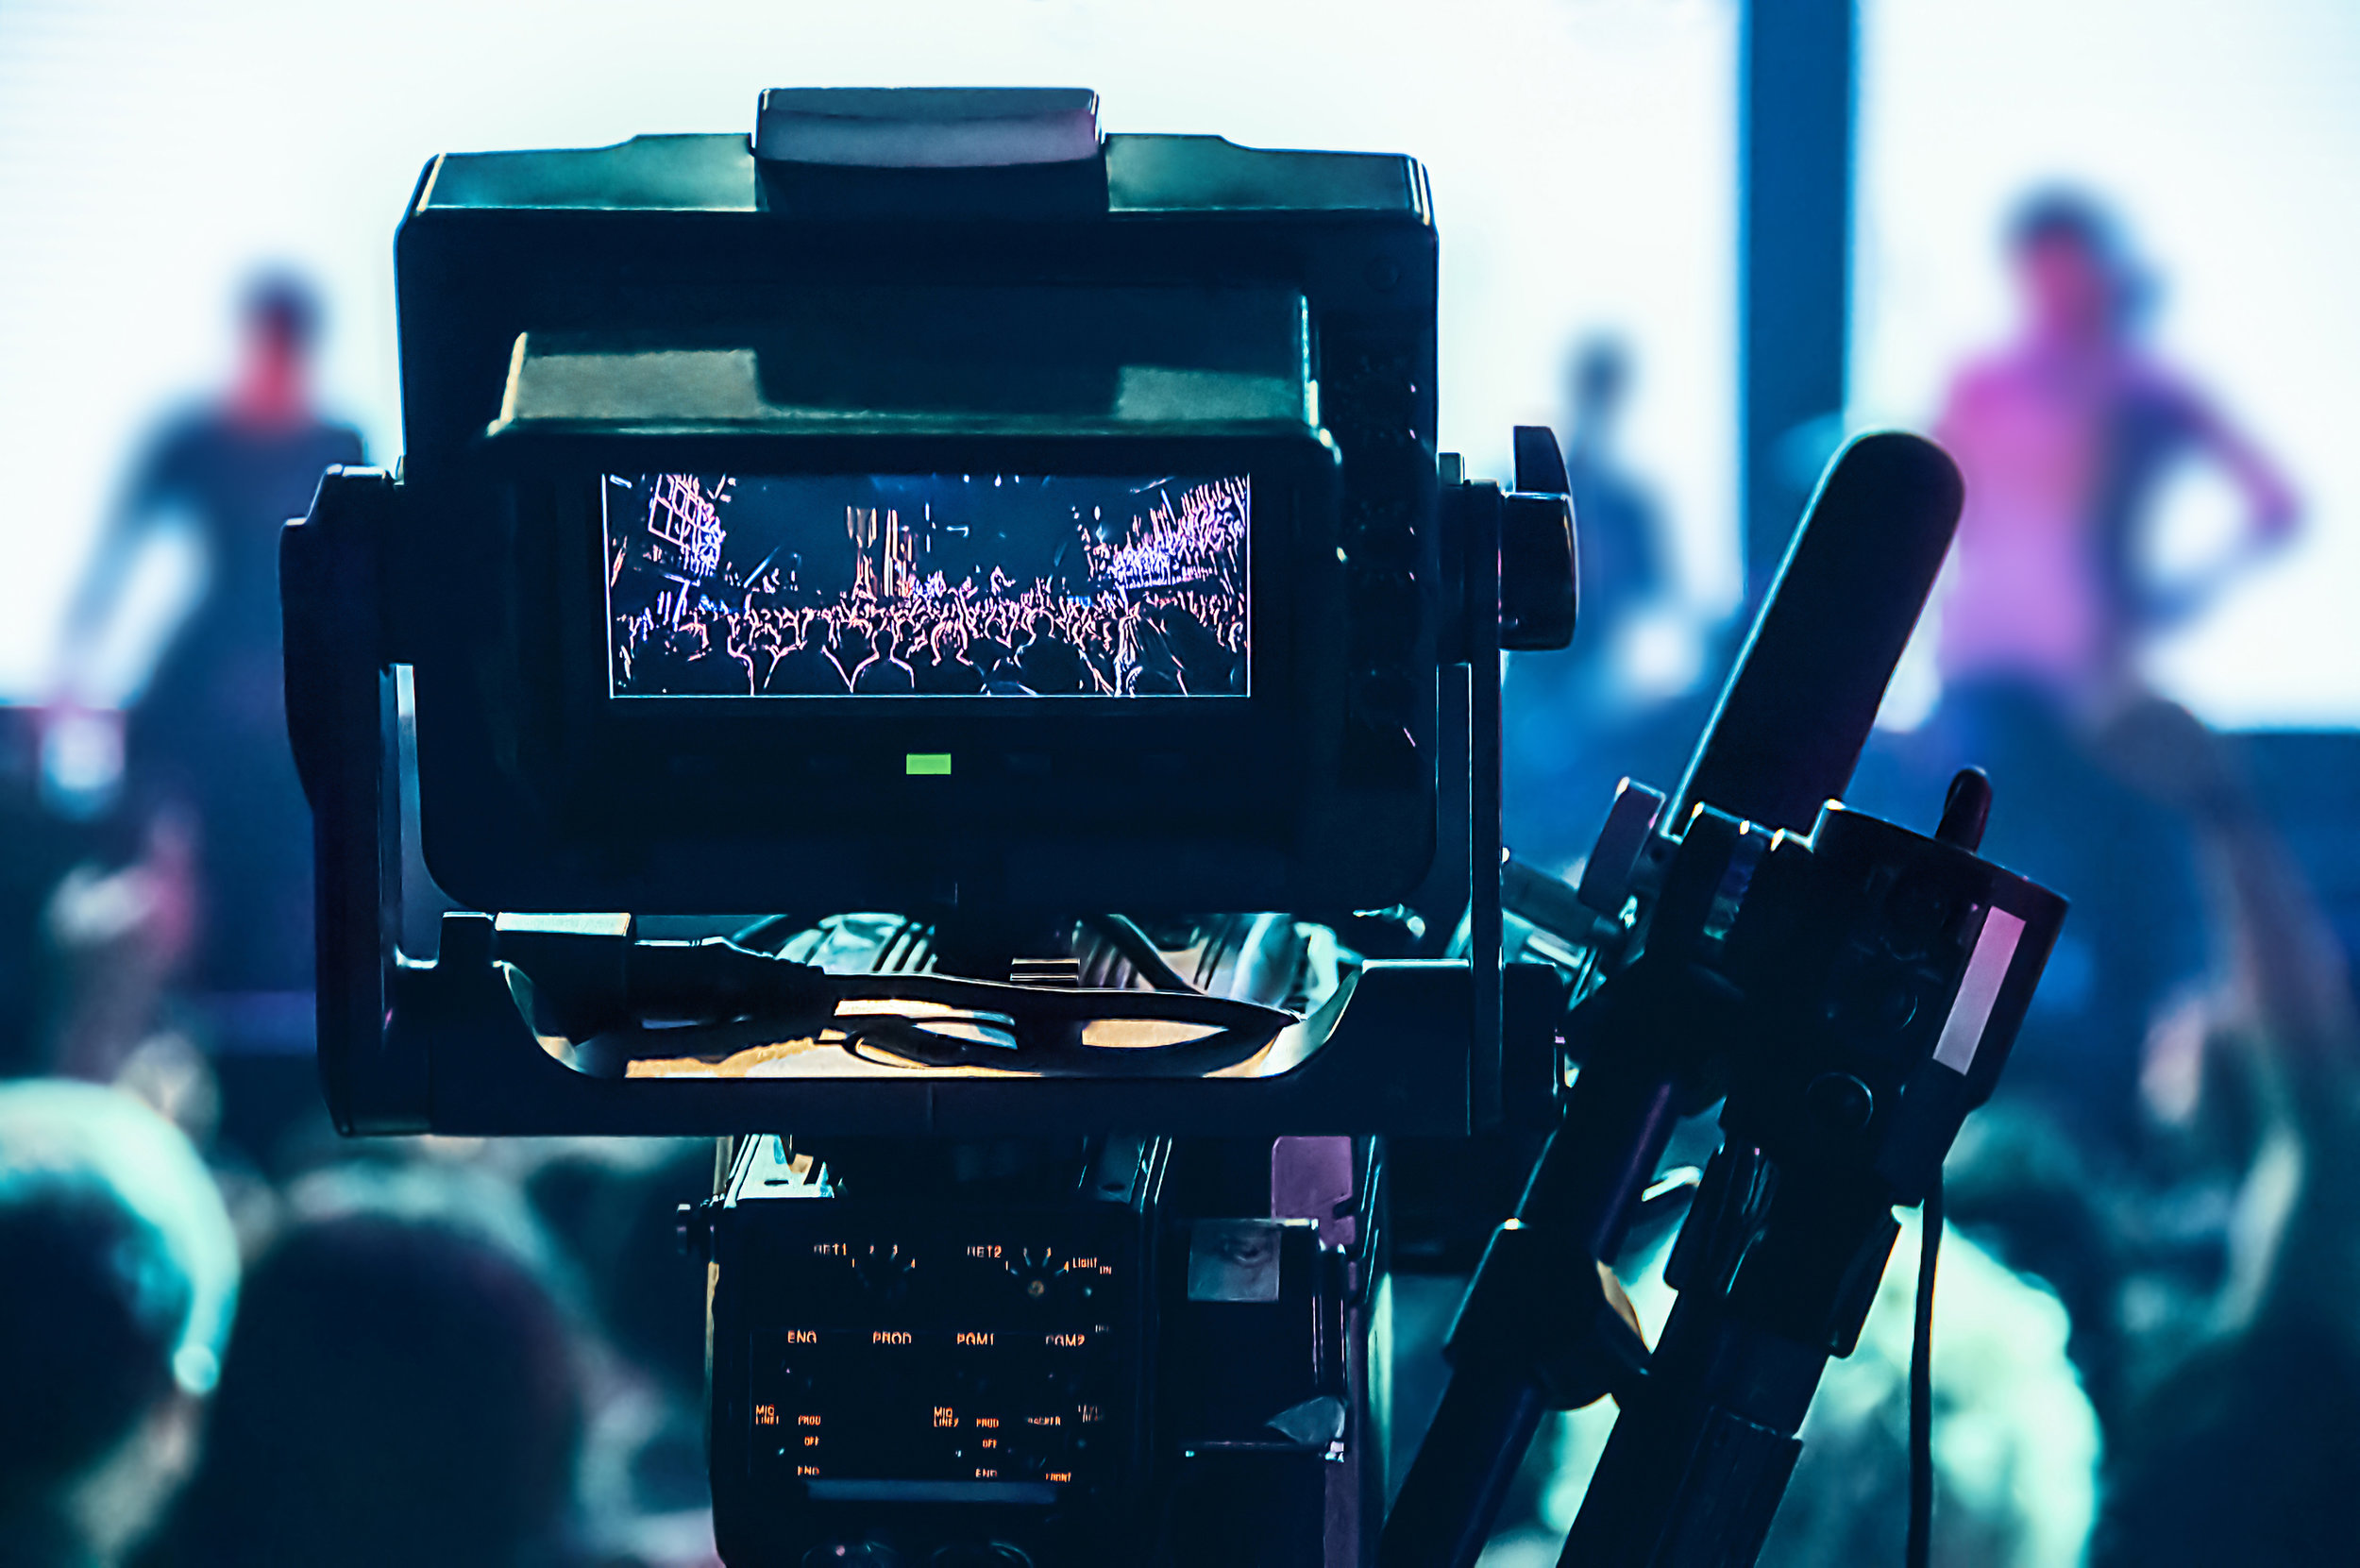 photodune-20615219-shooting-concert-professional-camera-view-of-the-video-camera-v-l.jpg